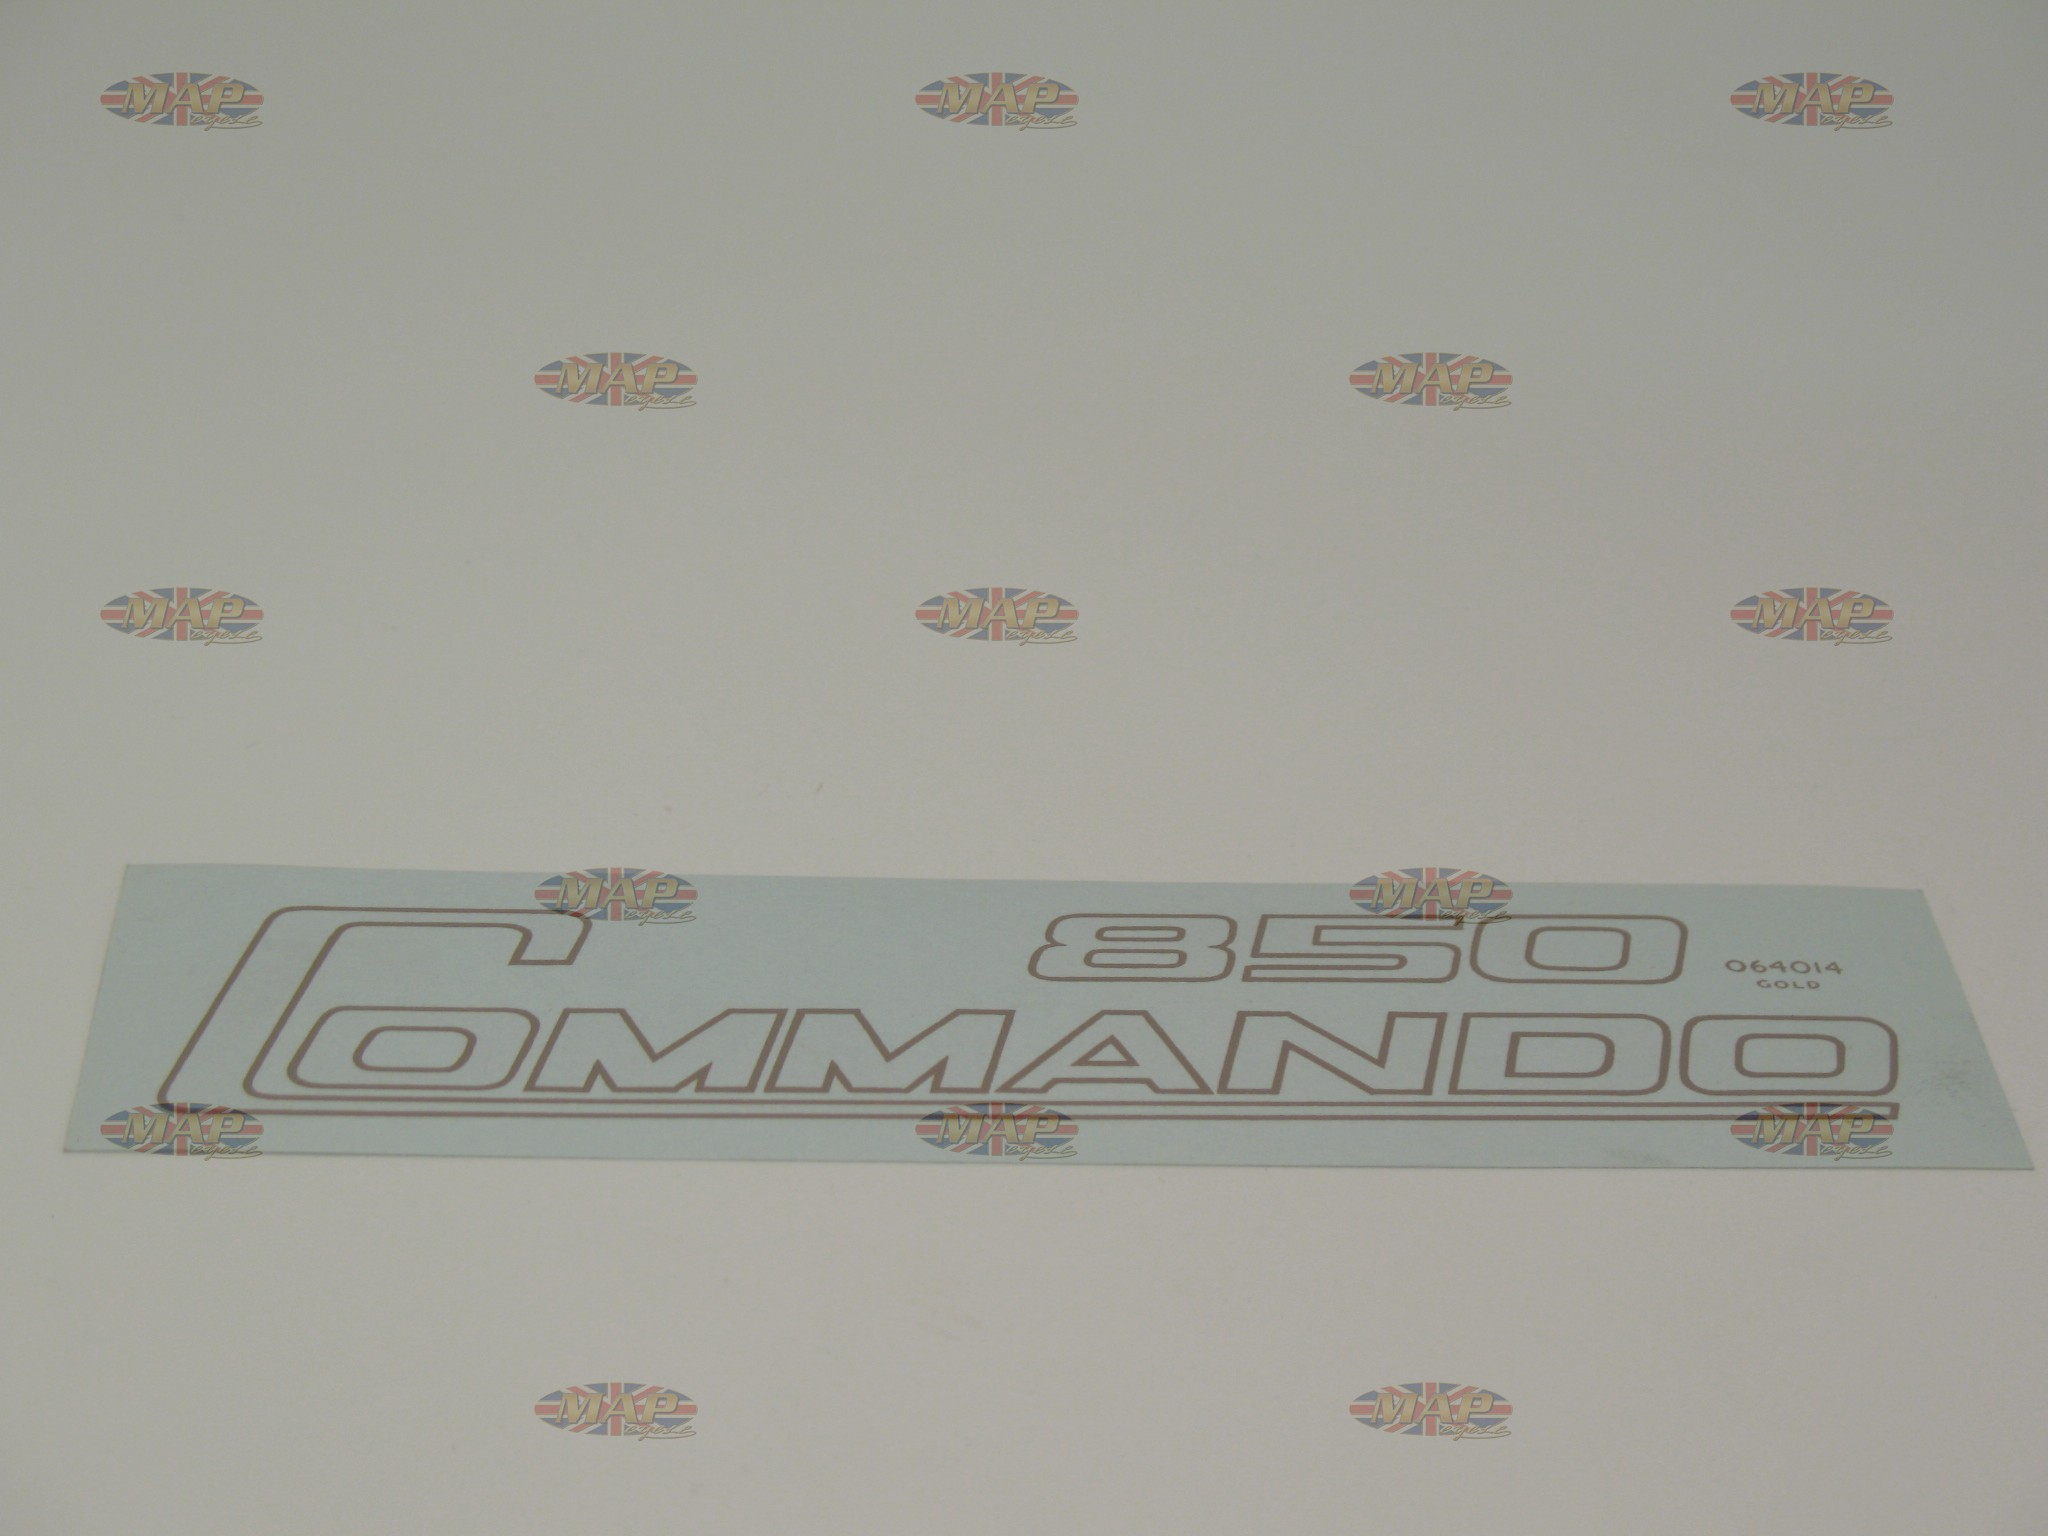 DECAL/  850 COMMANDO  GOLD (OR 06-5097) 06-4014